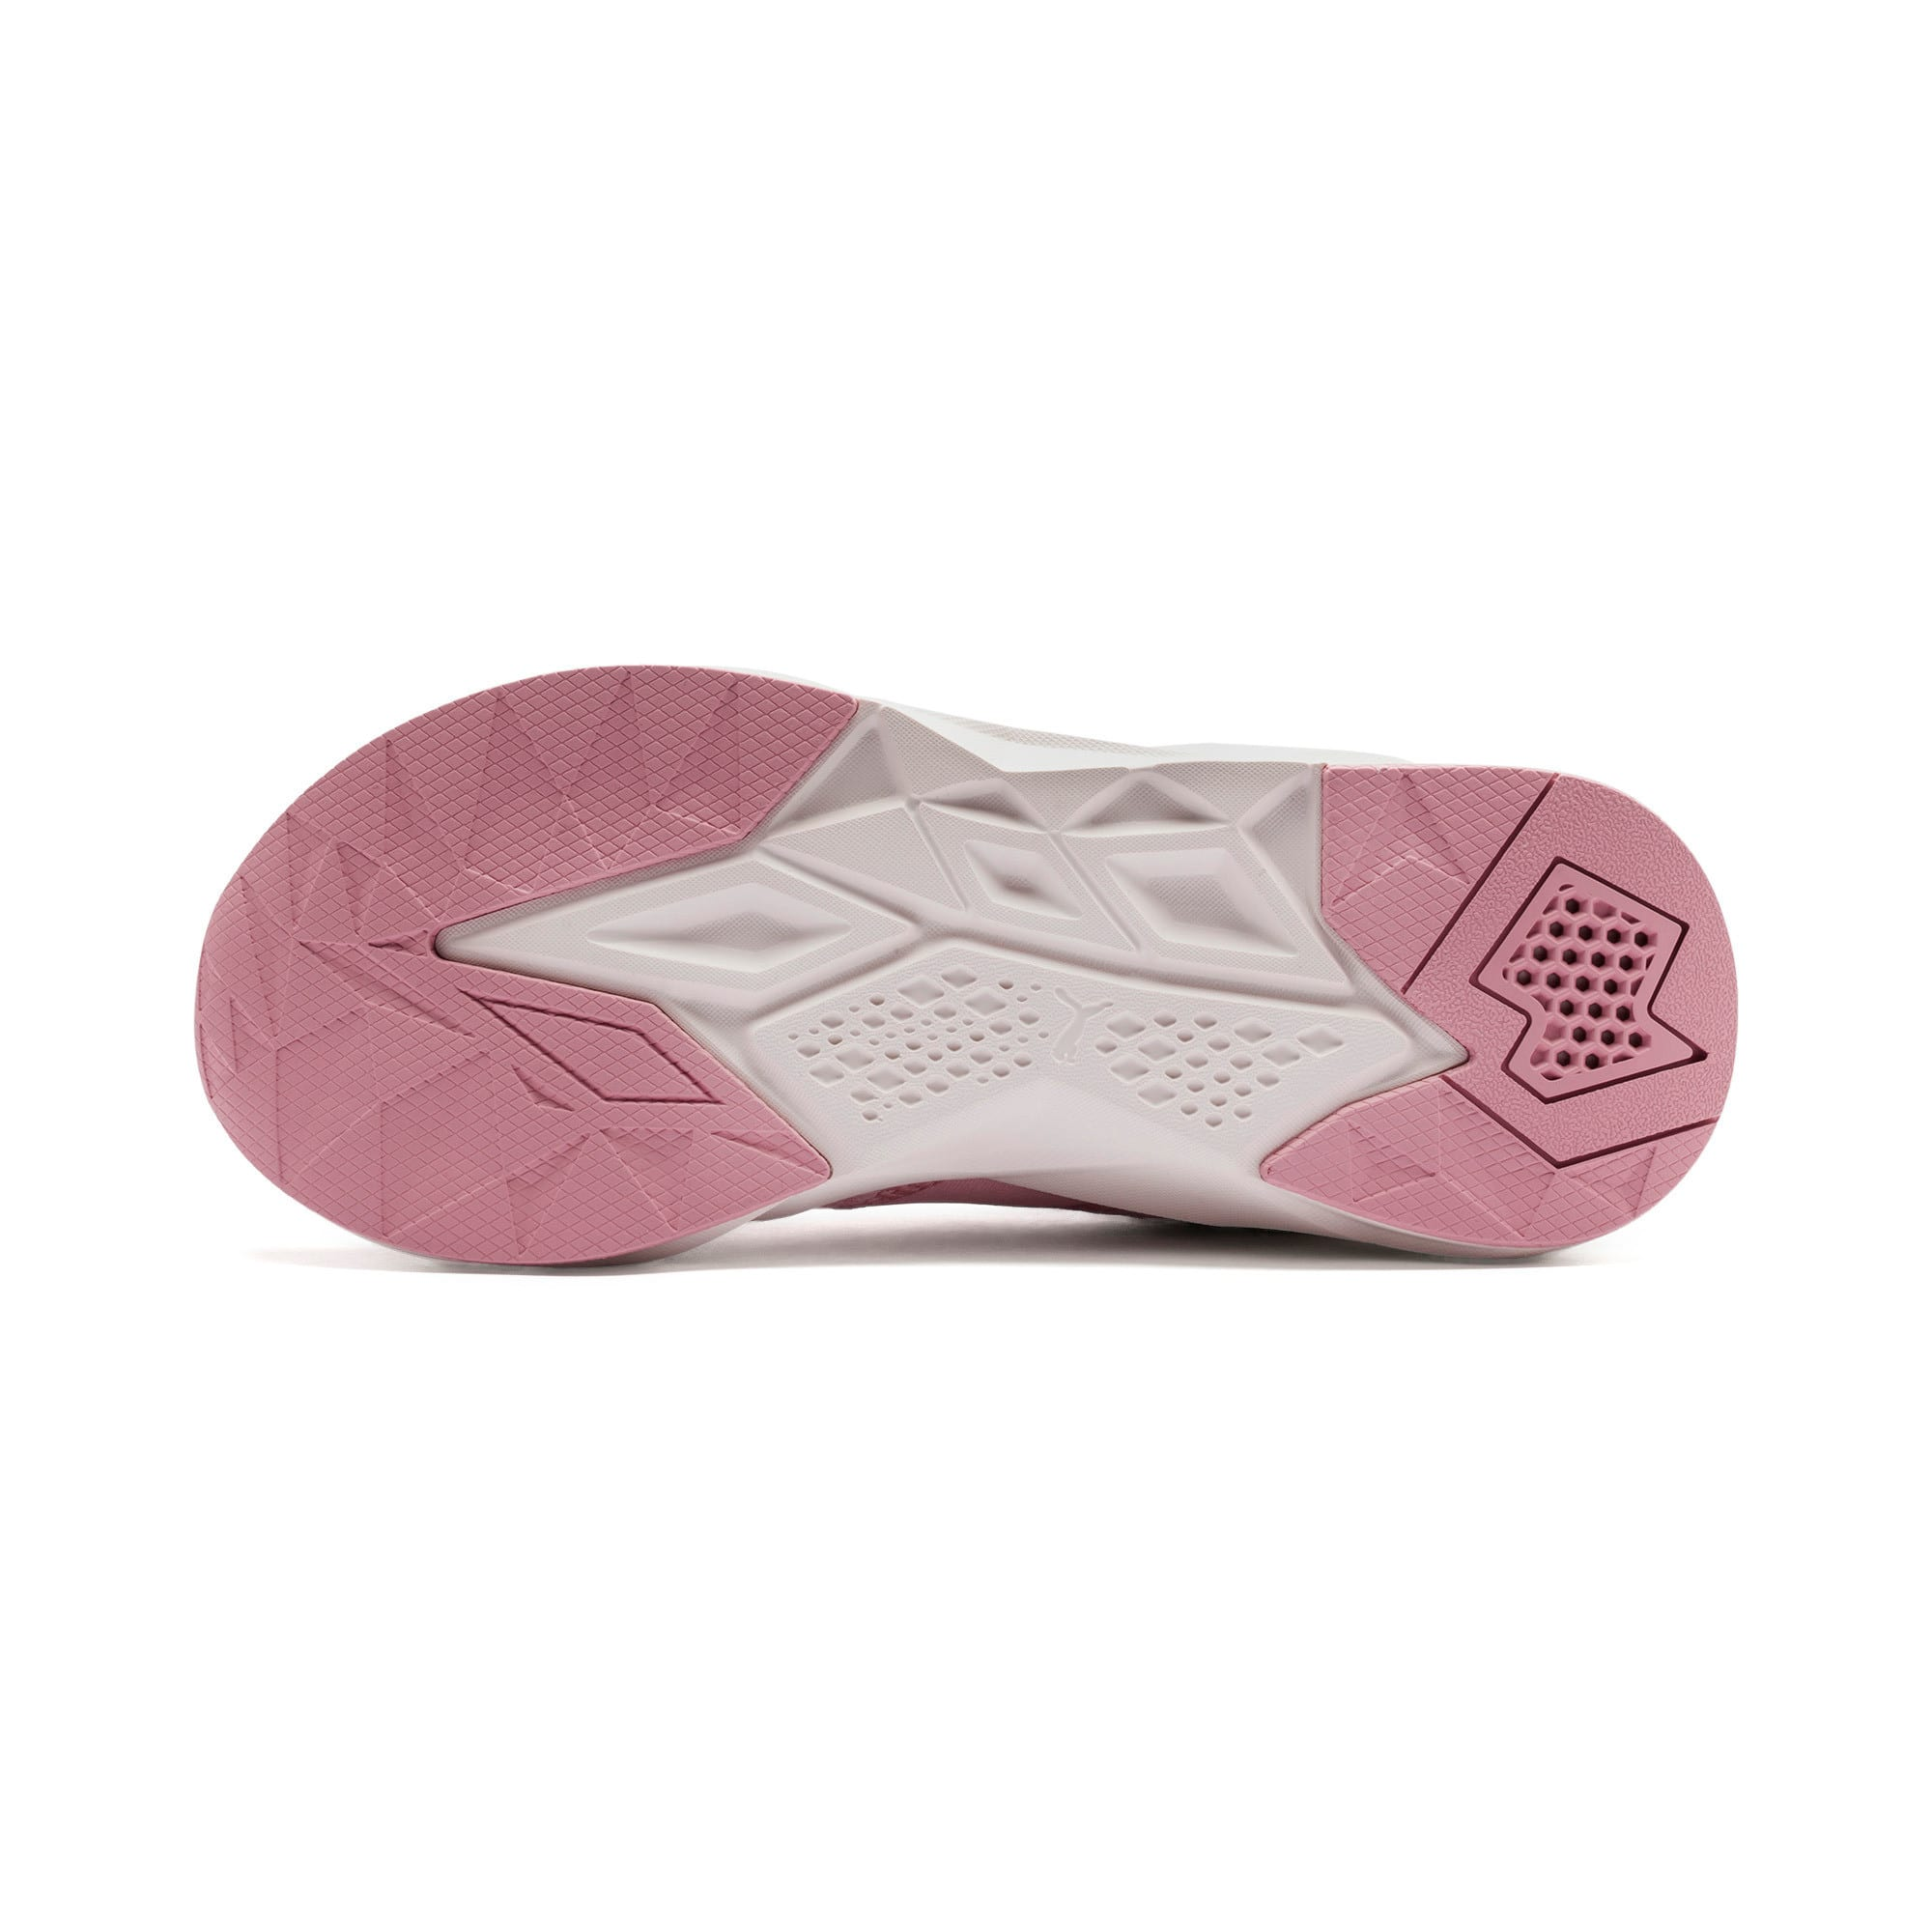 Thumbnail 5 of CELL Plasmic Women's Trainers, Bridal Rose-Pastel Parchment, medium